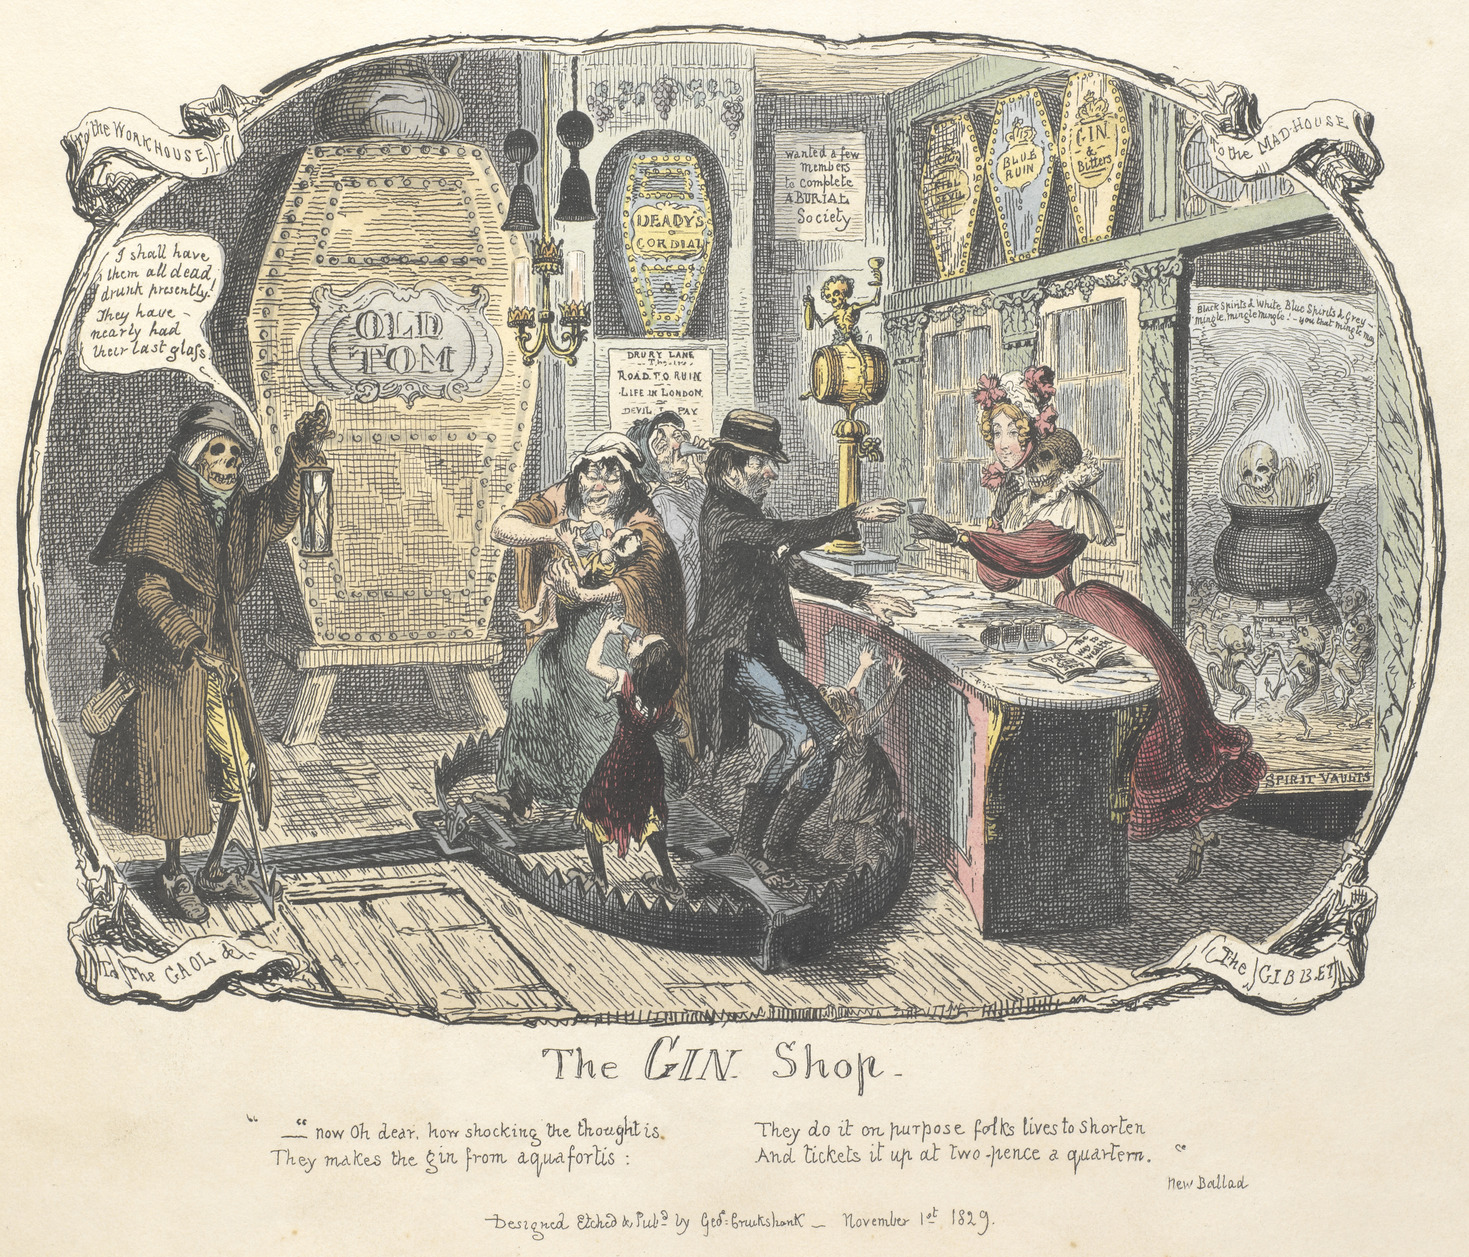 The Gin Shop , a cartoon about drinking too much. By George Cruikshank, 1829.